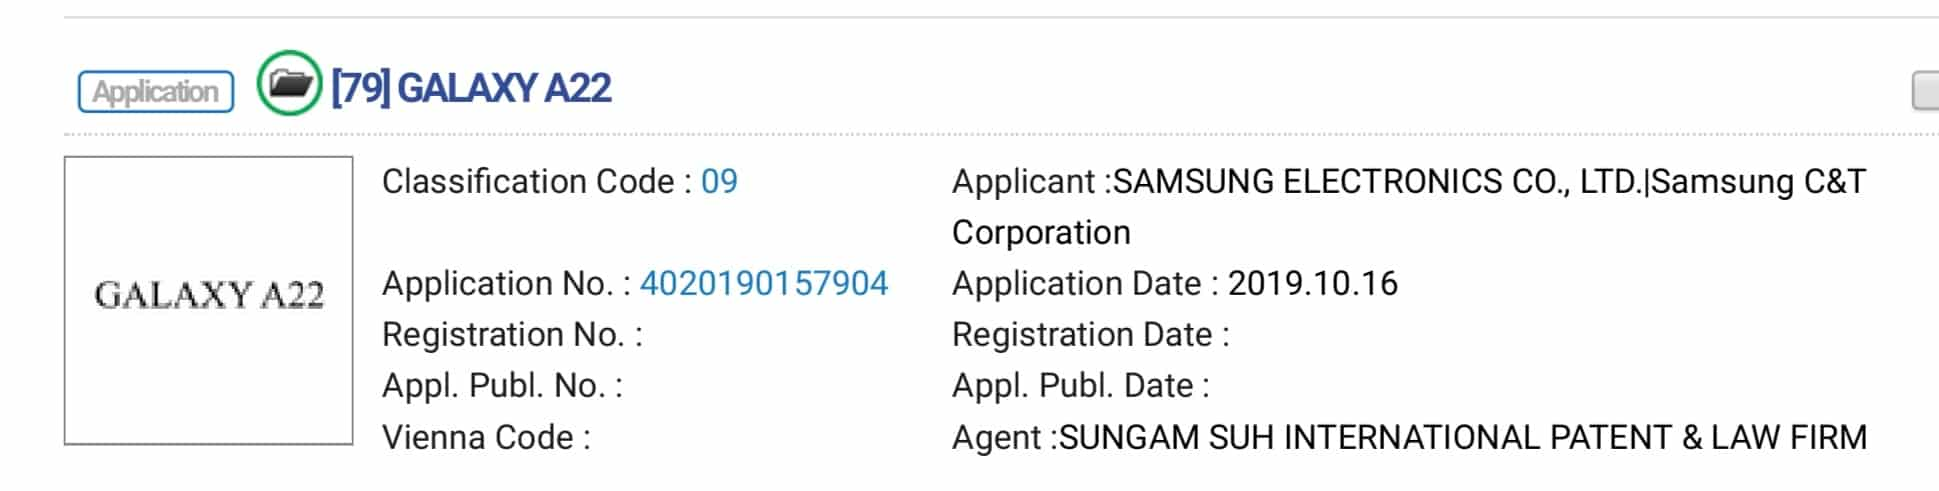 Galaxy A phone trademarks January 2020 image 4